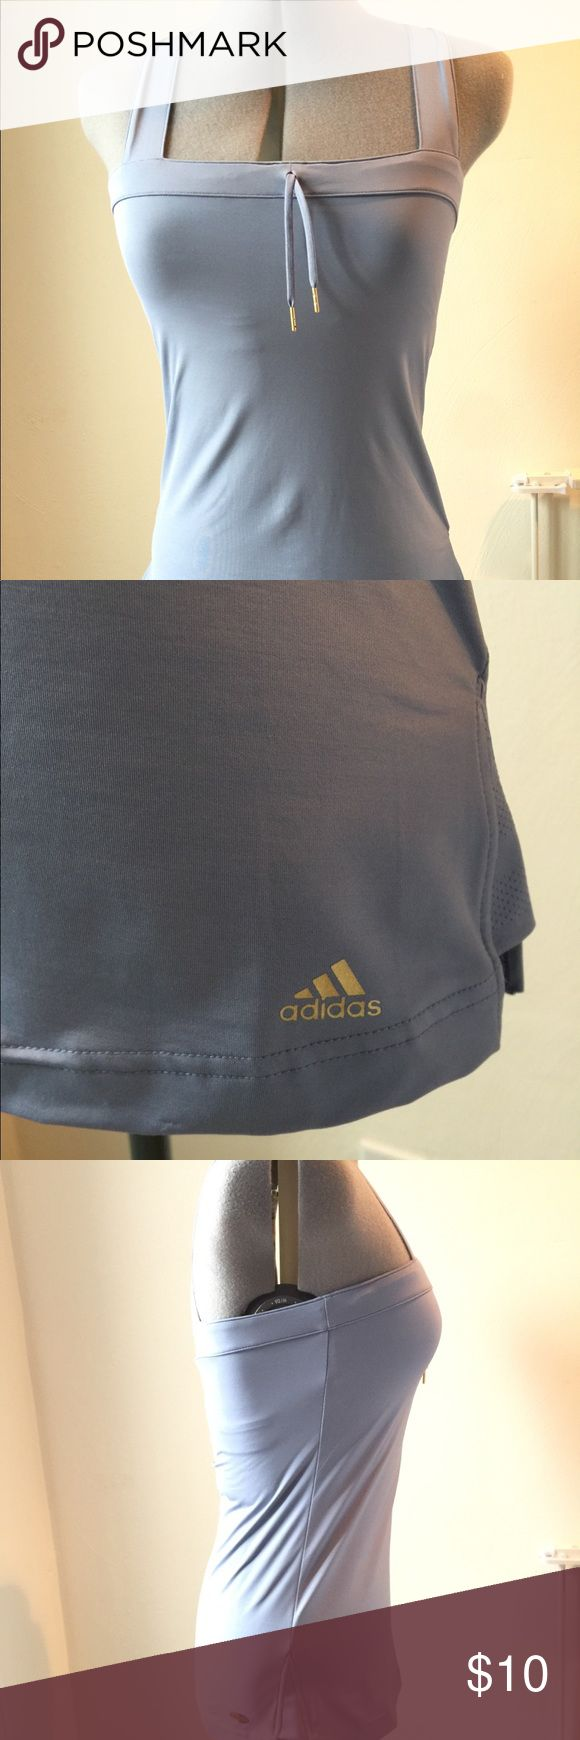 Adidas Athletic Top Shelf bra. Light silvery blue. Climalite material. Worn once, maybe twice. adidas Tops Tank Tops